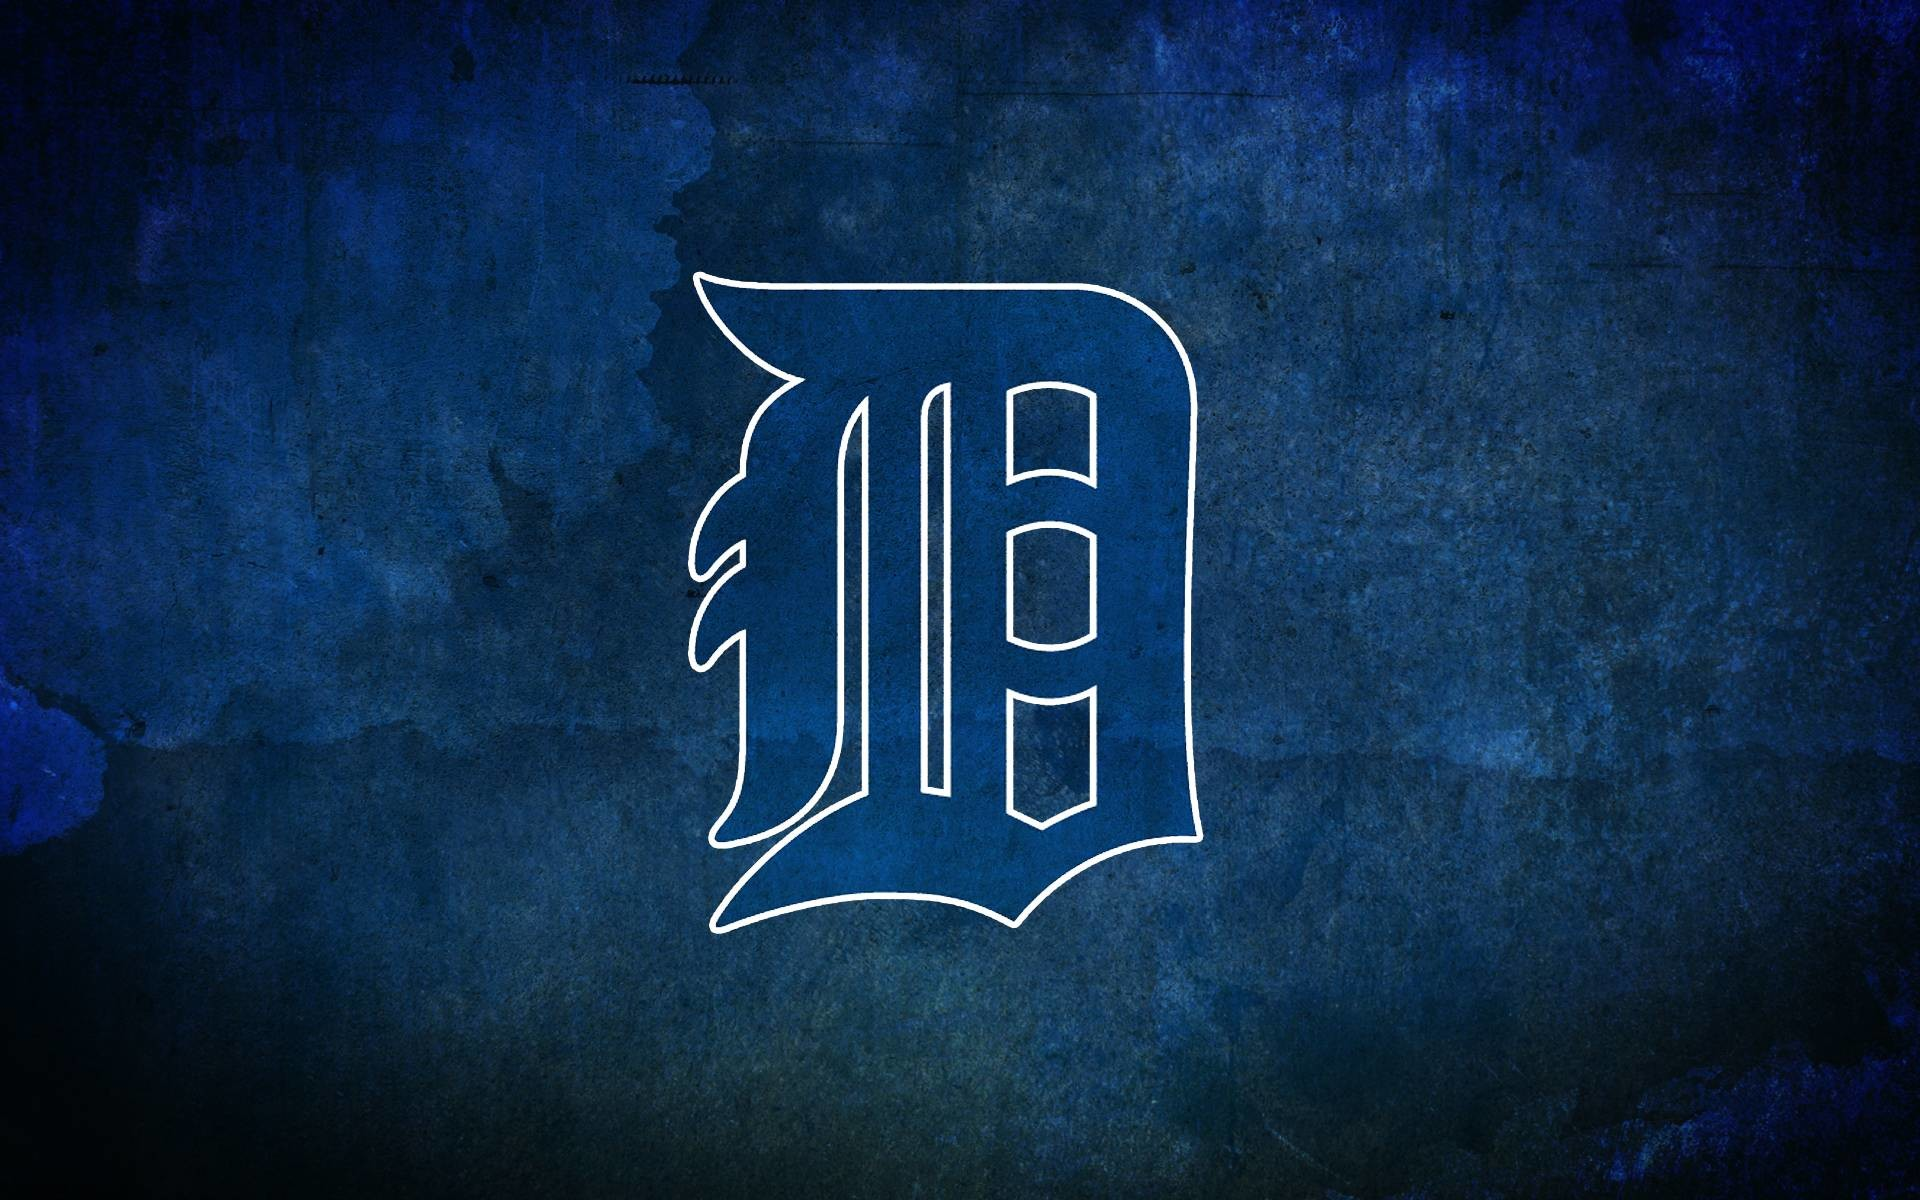 Detroit Tigers Cool Wallpapers 24857 Images | wallgraf.